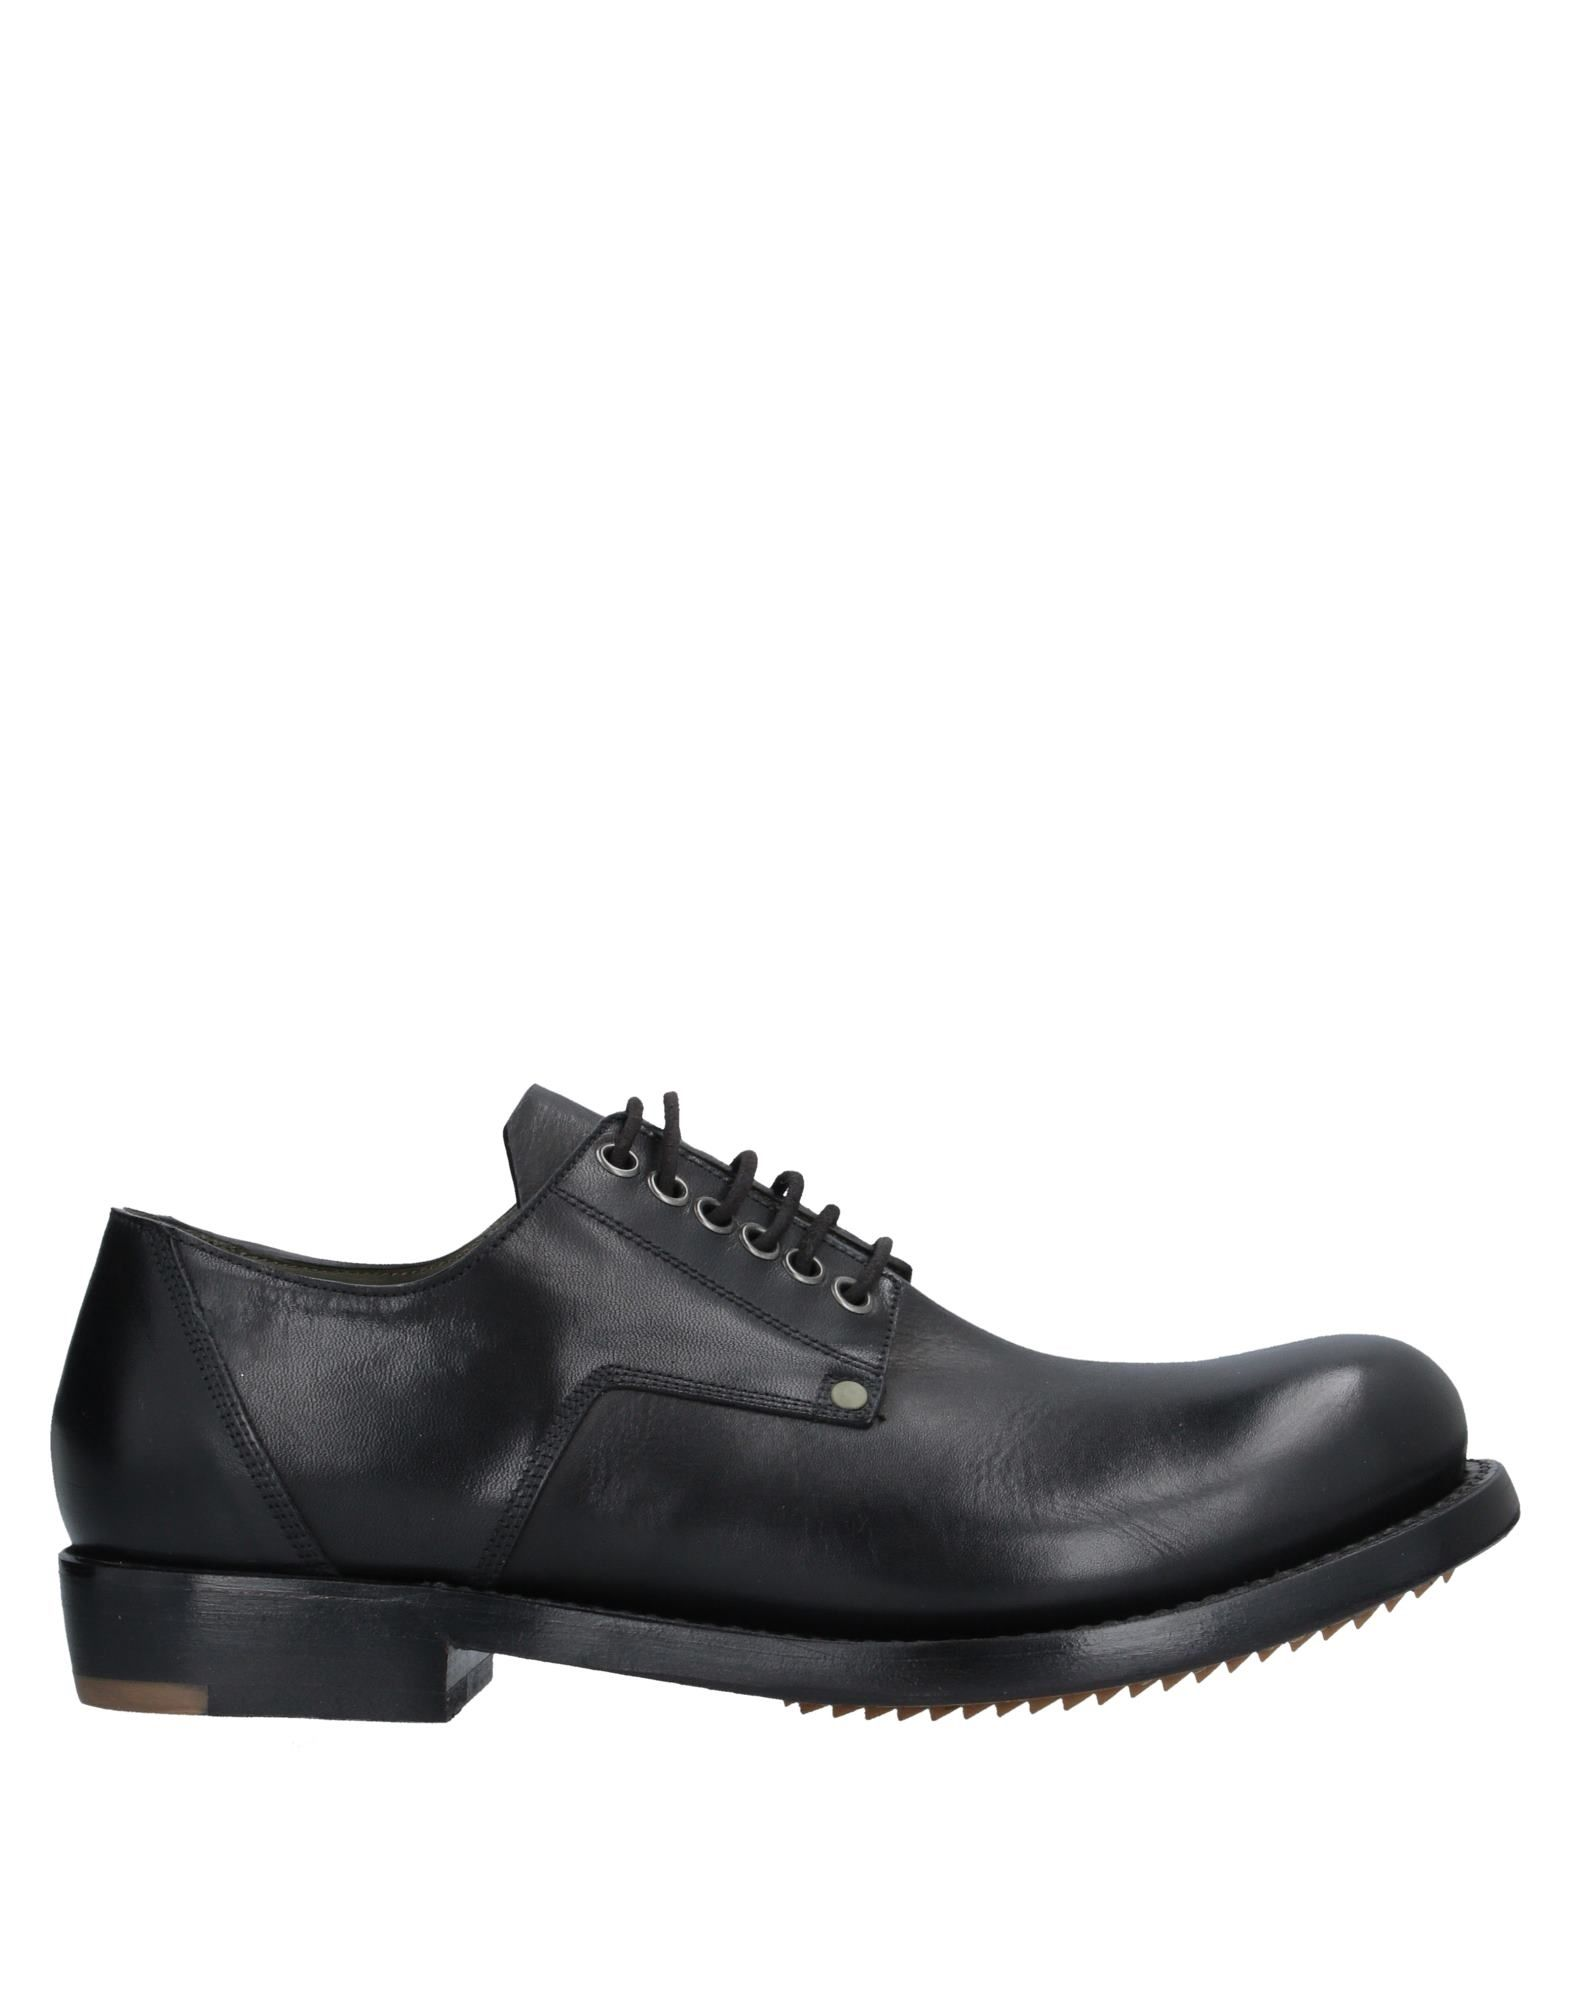 RICK OWENS Lace-up shoes. no appliqués, solid color, round toeline, square heel, leather lining, leather/rubber sole, contains non-textile parts of animal origin. Soft Leather